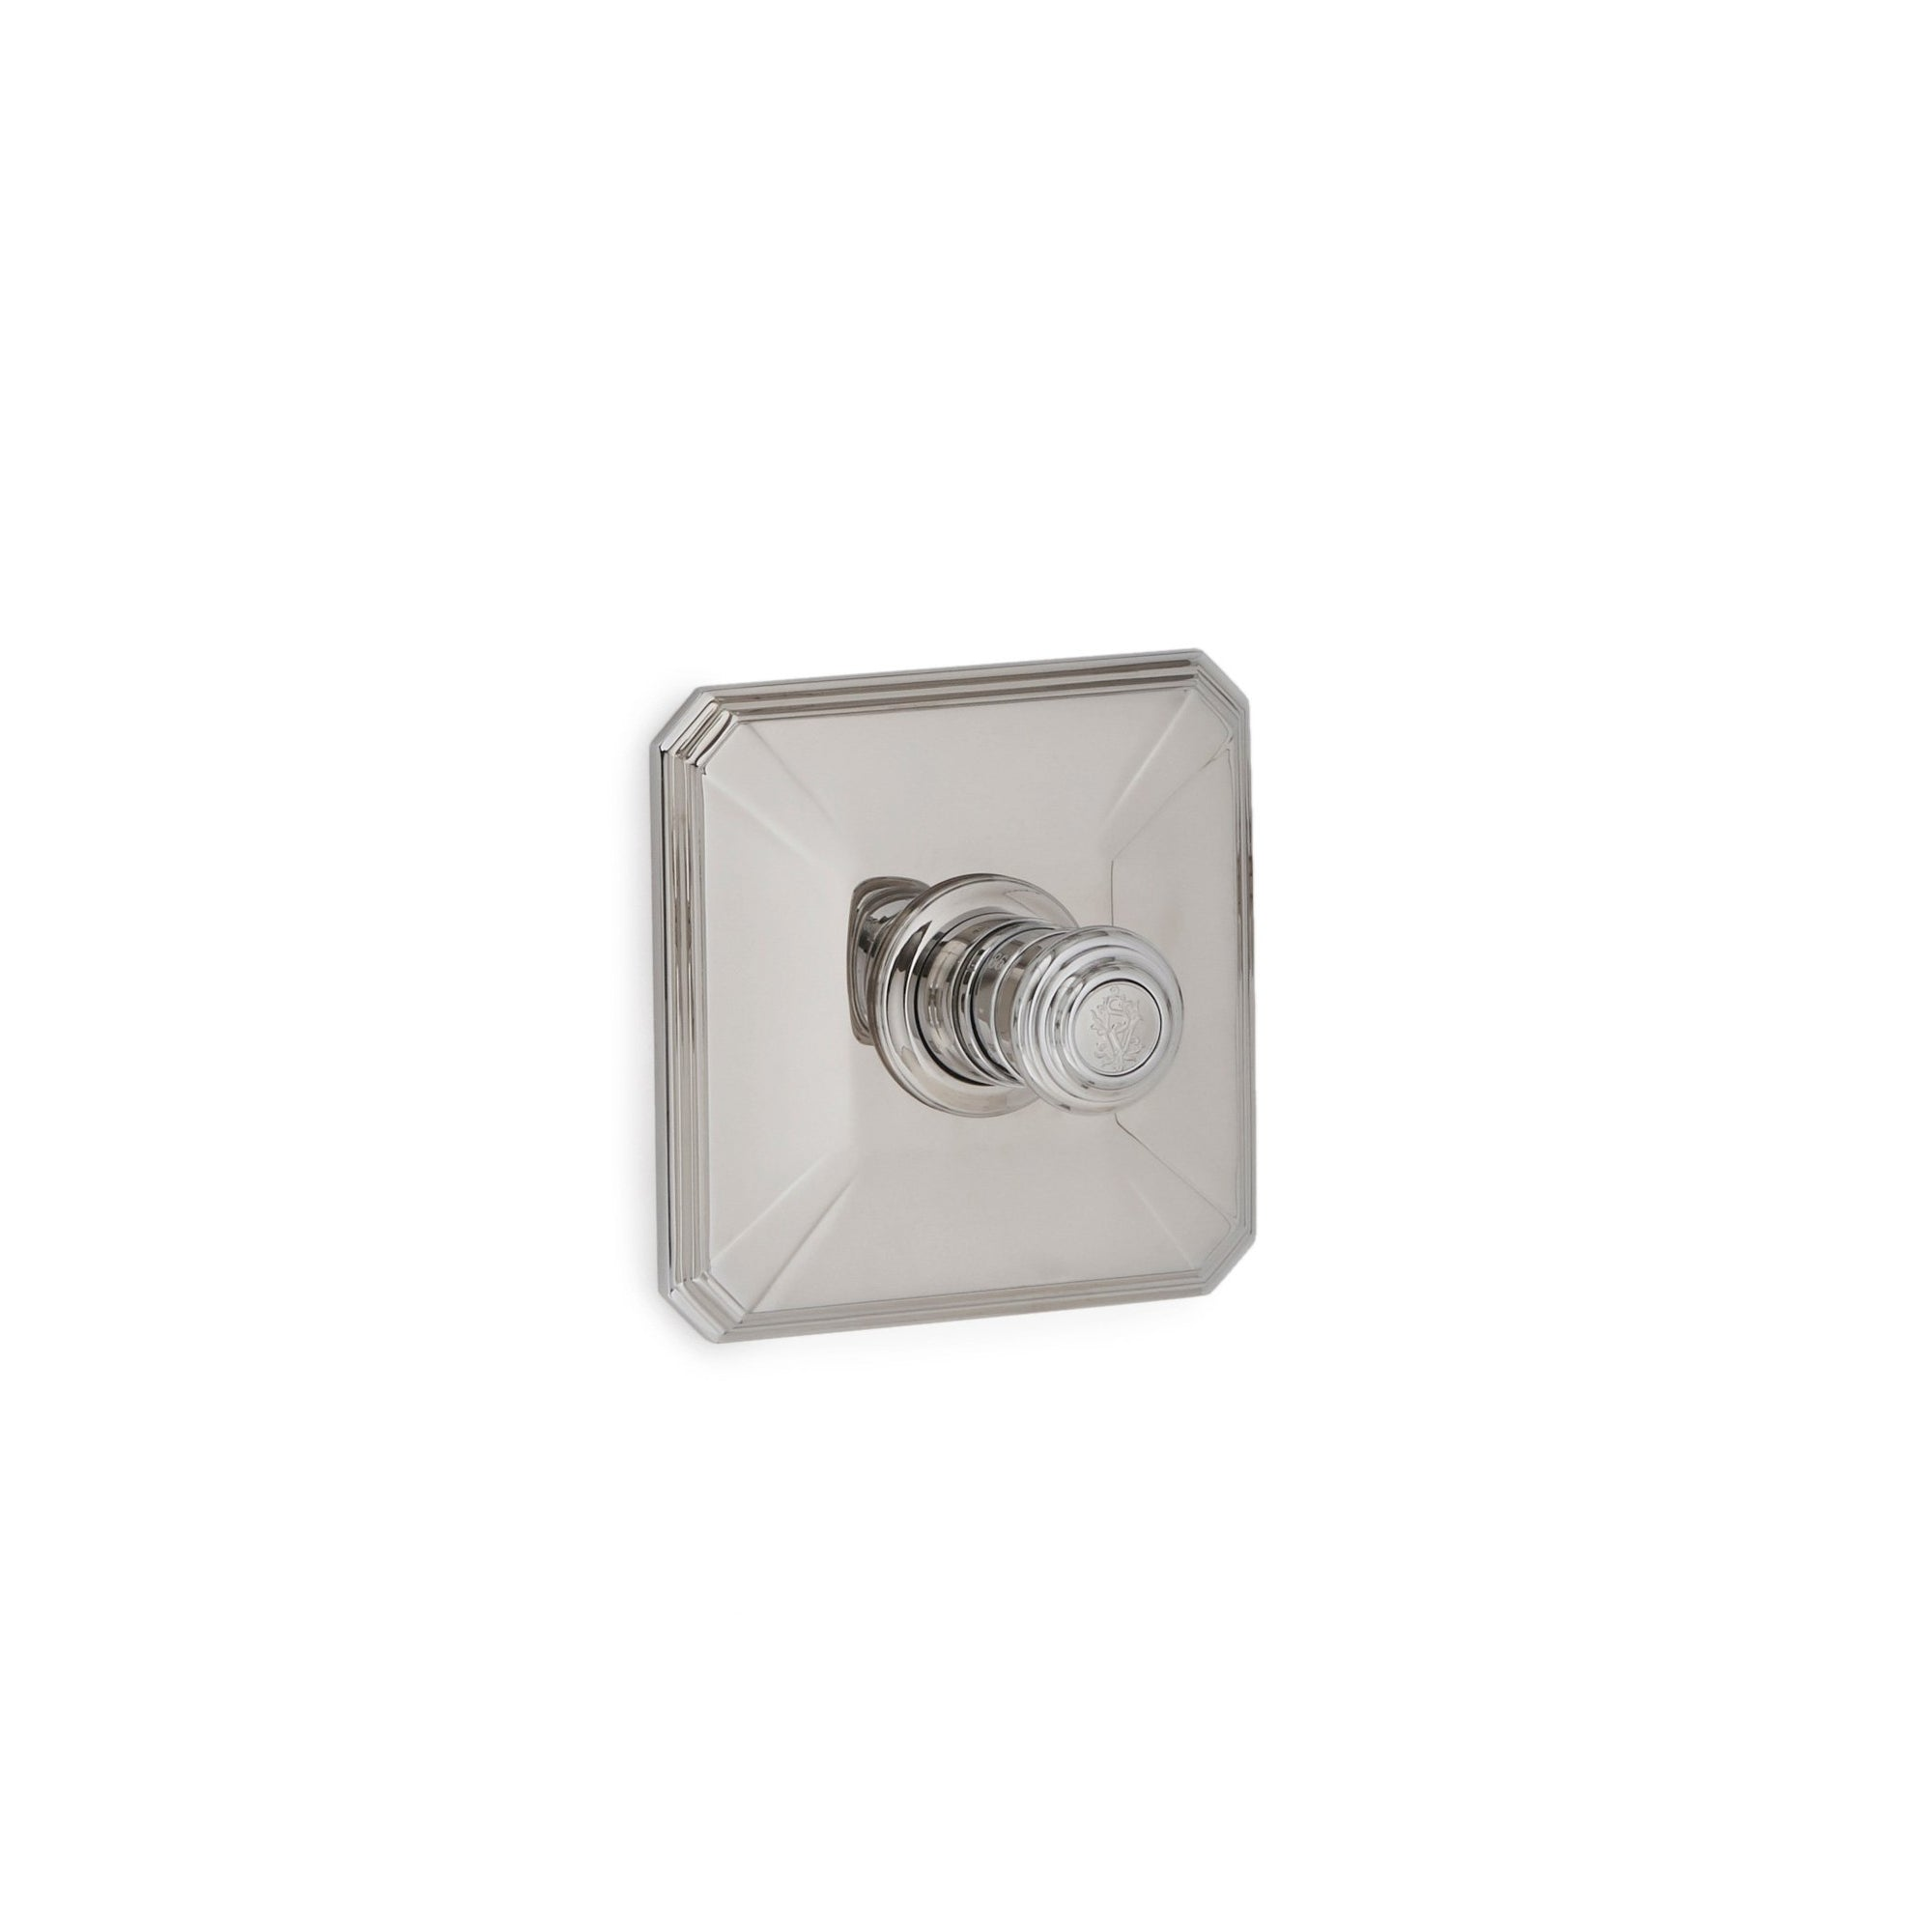 TMO08PL-LOGO-CP Sherle Wagner International Harrison High Flow Thermostatic Trim in Polished Chrome metal finish